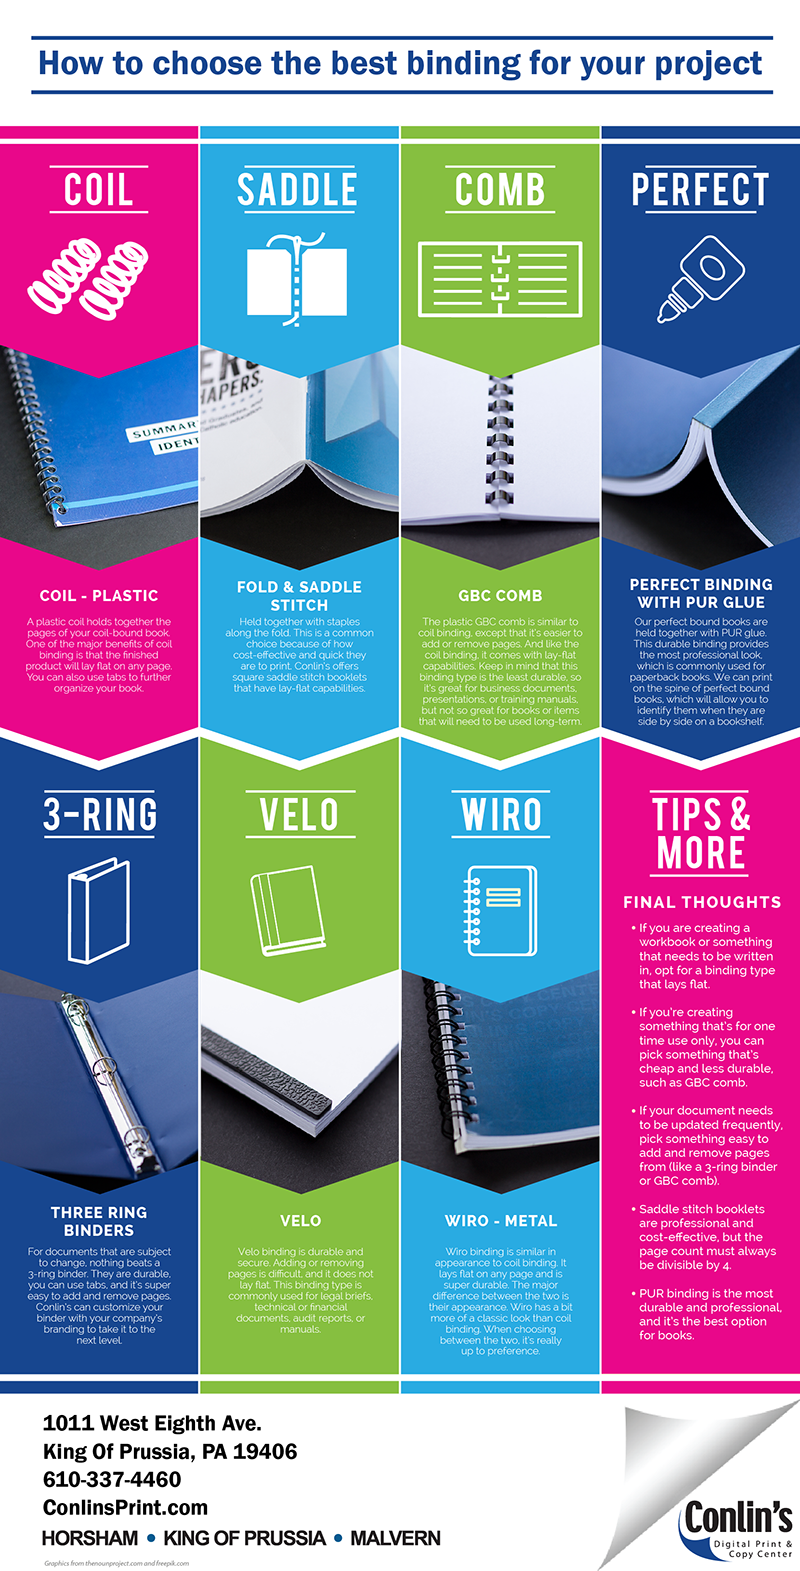 ConlinsInfographic-Binding-Revised